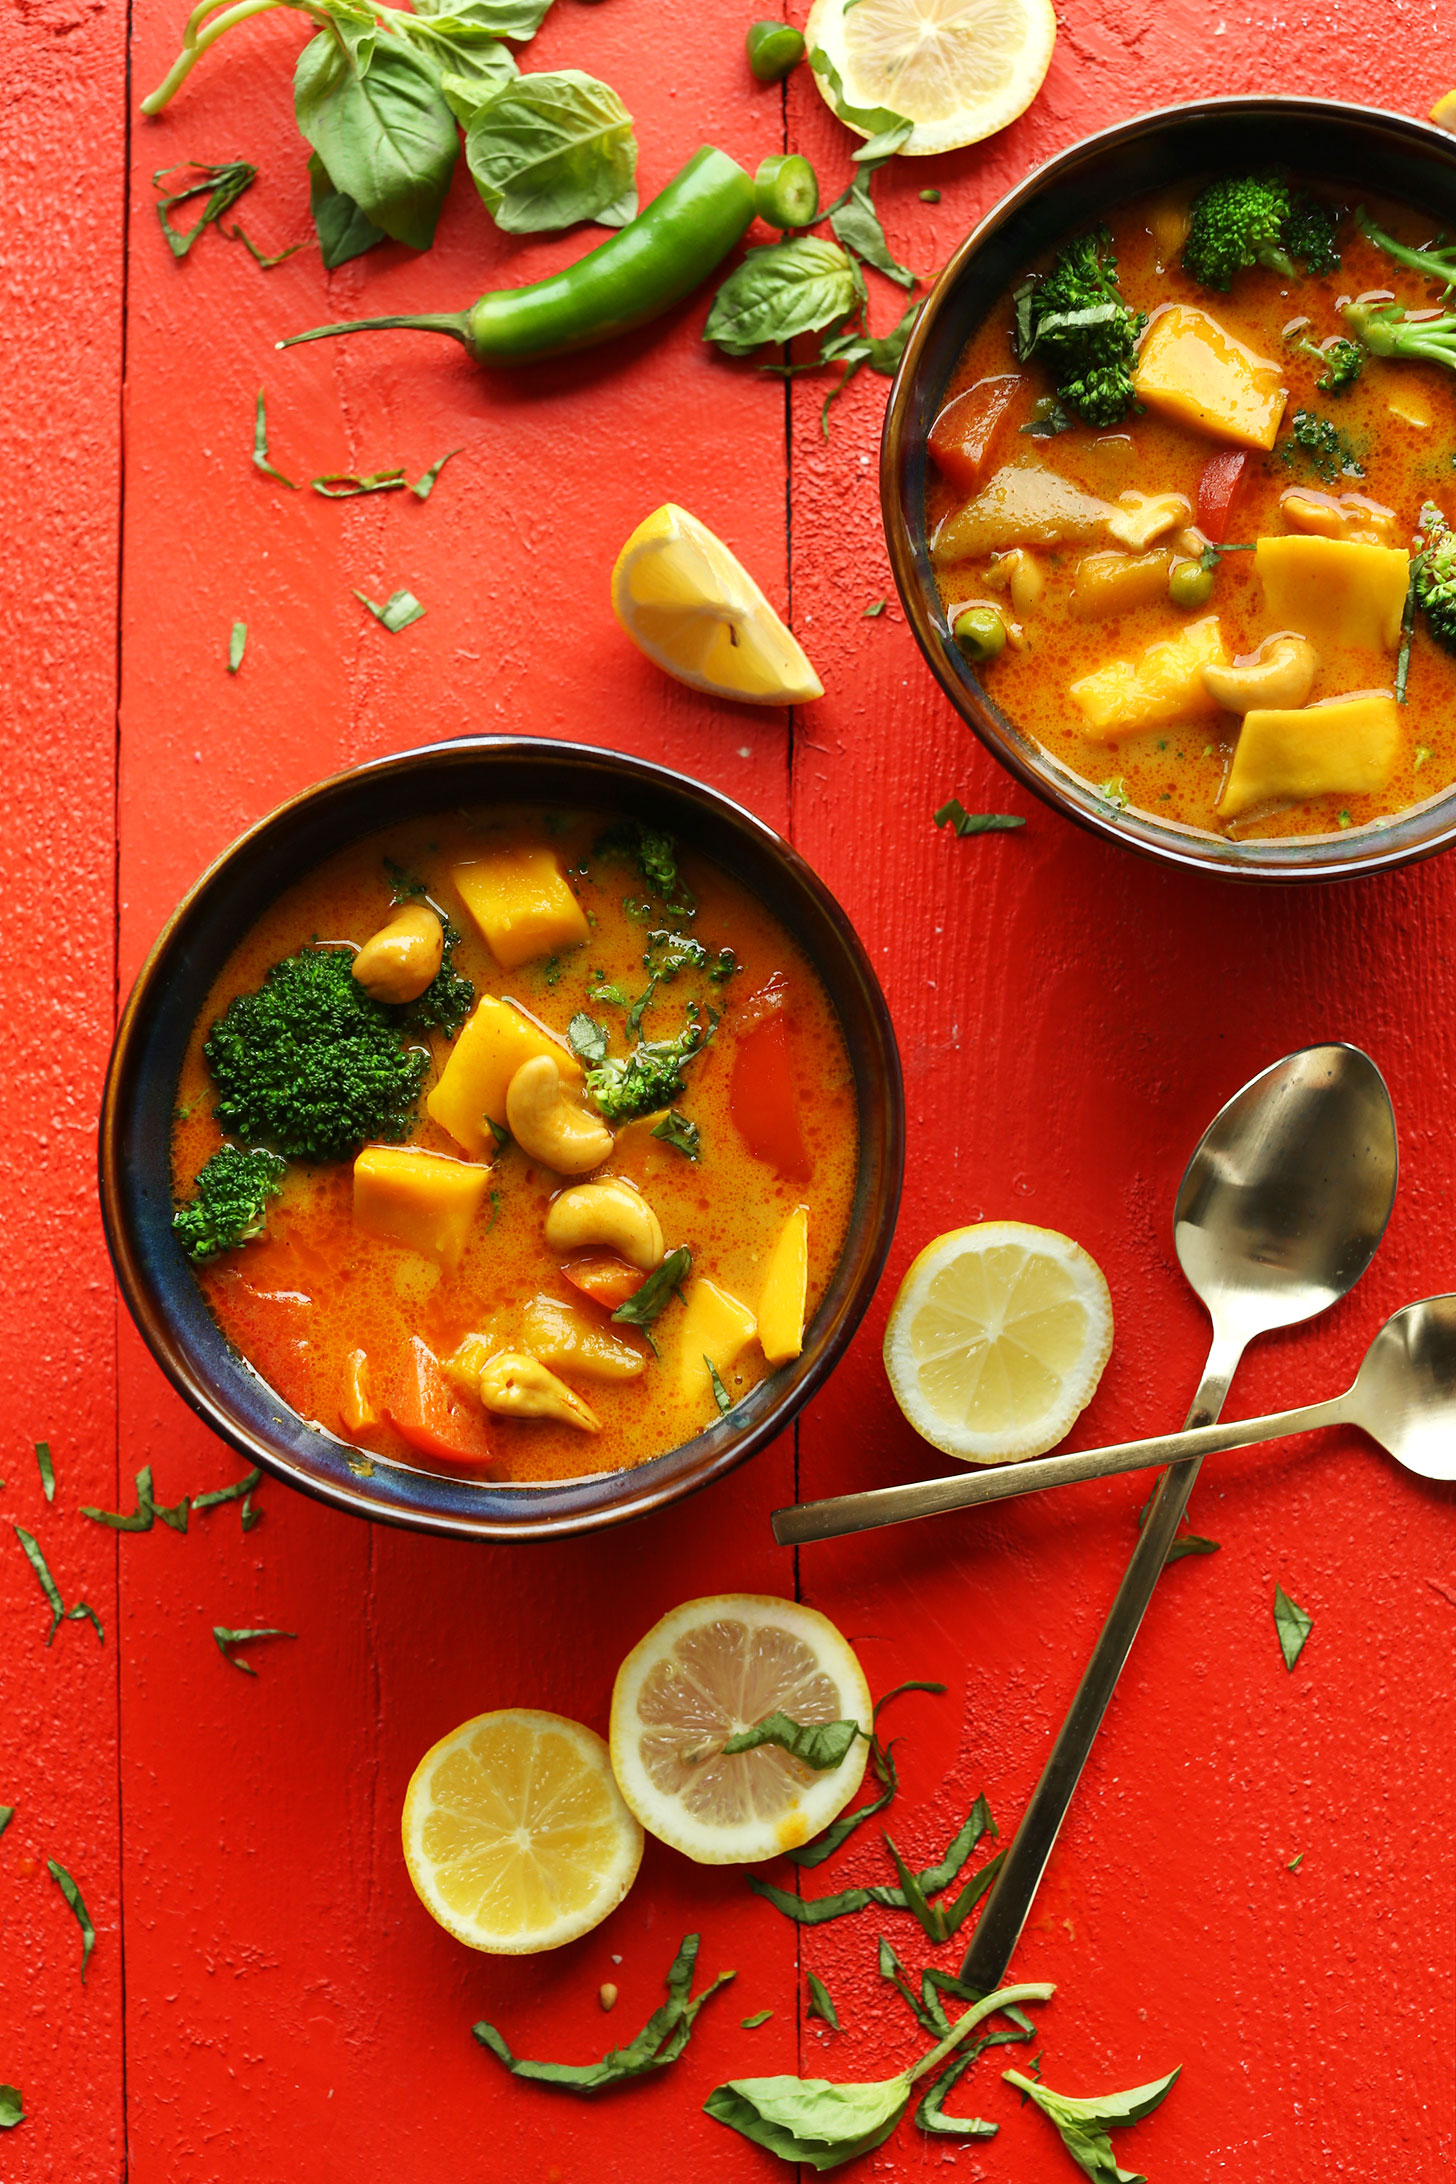 Two bowls of our Yellow Thai Mango Curry recipe for an easy gluten-free vegan dinner